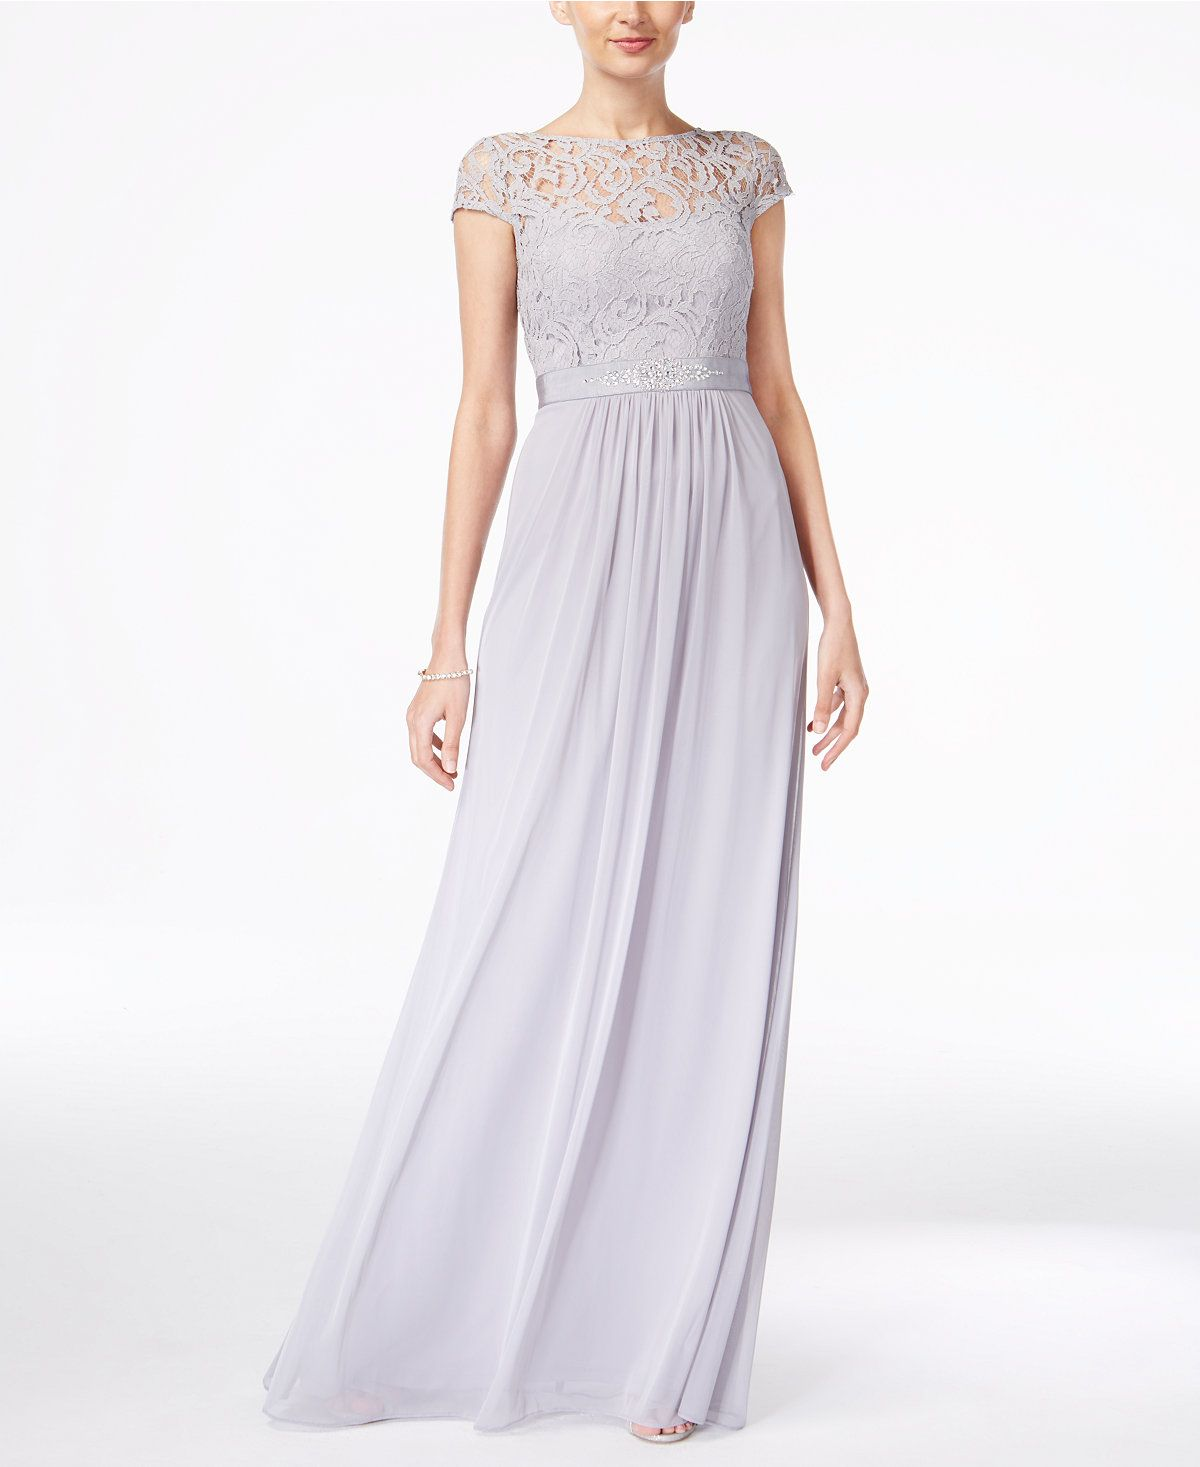 Macy's party dresses weddings  Lace Illusion Gown  Daughter of Mine  Pinterest  Adrianna papell